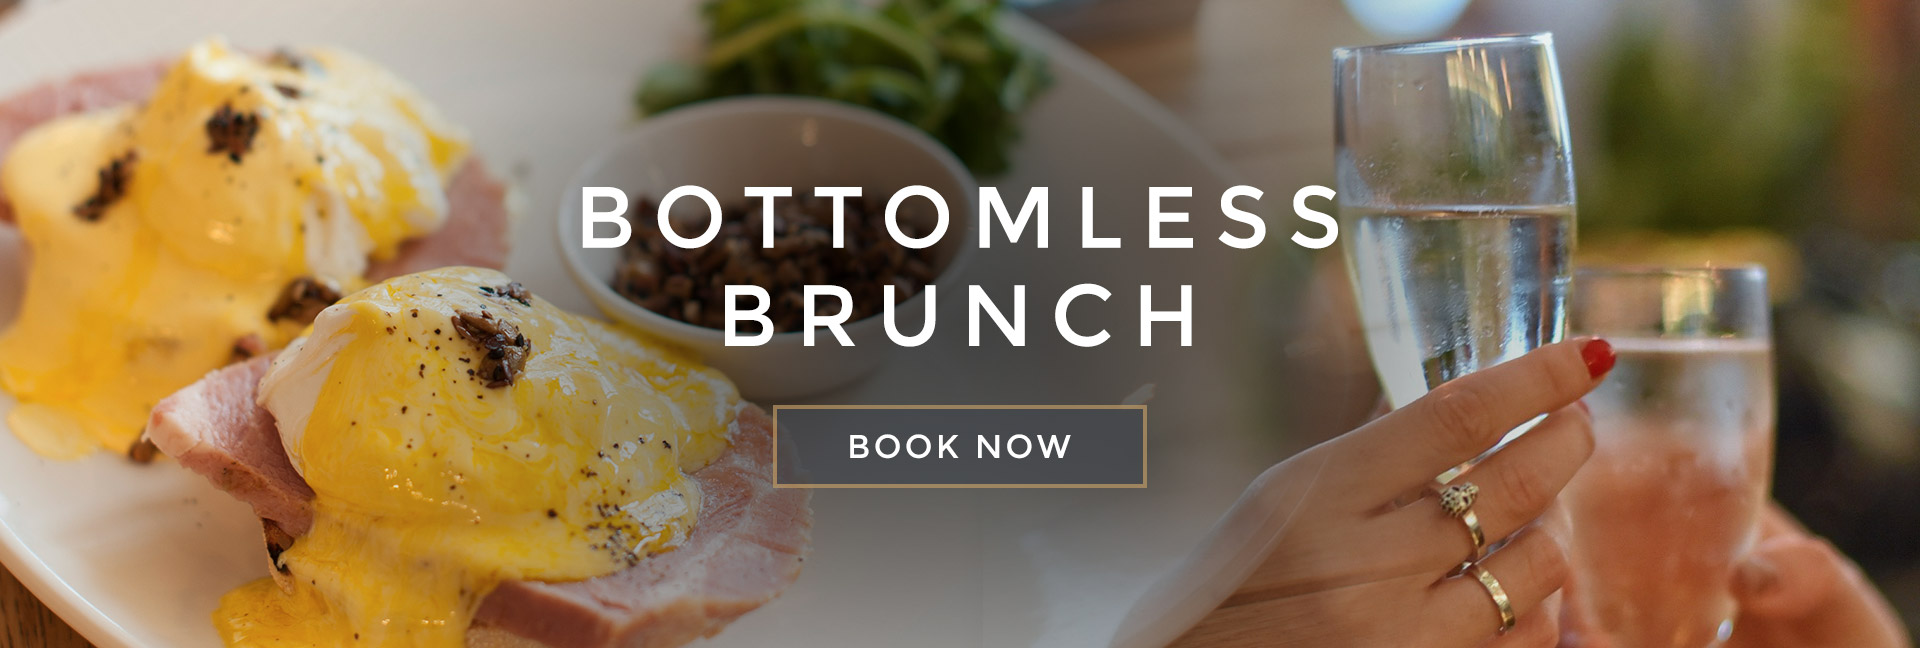 Bottomless Brunch at All Bar One Waterloo - Book now